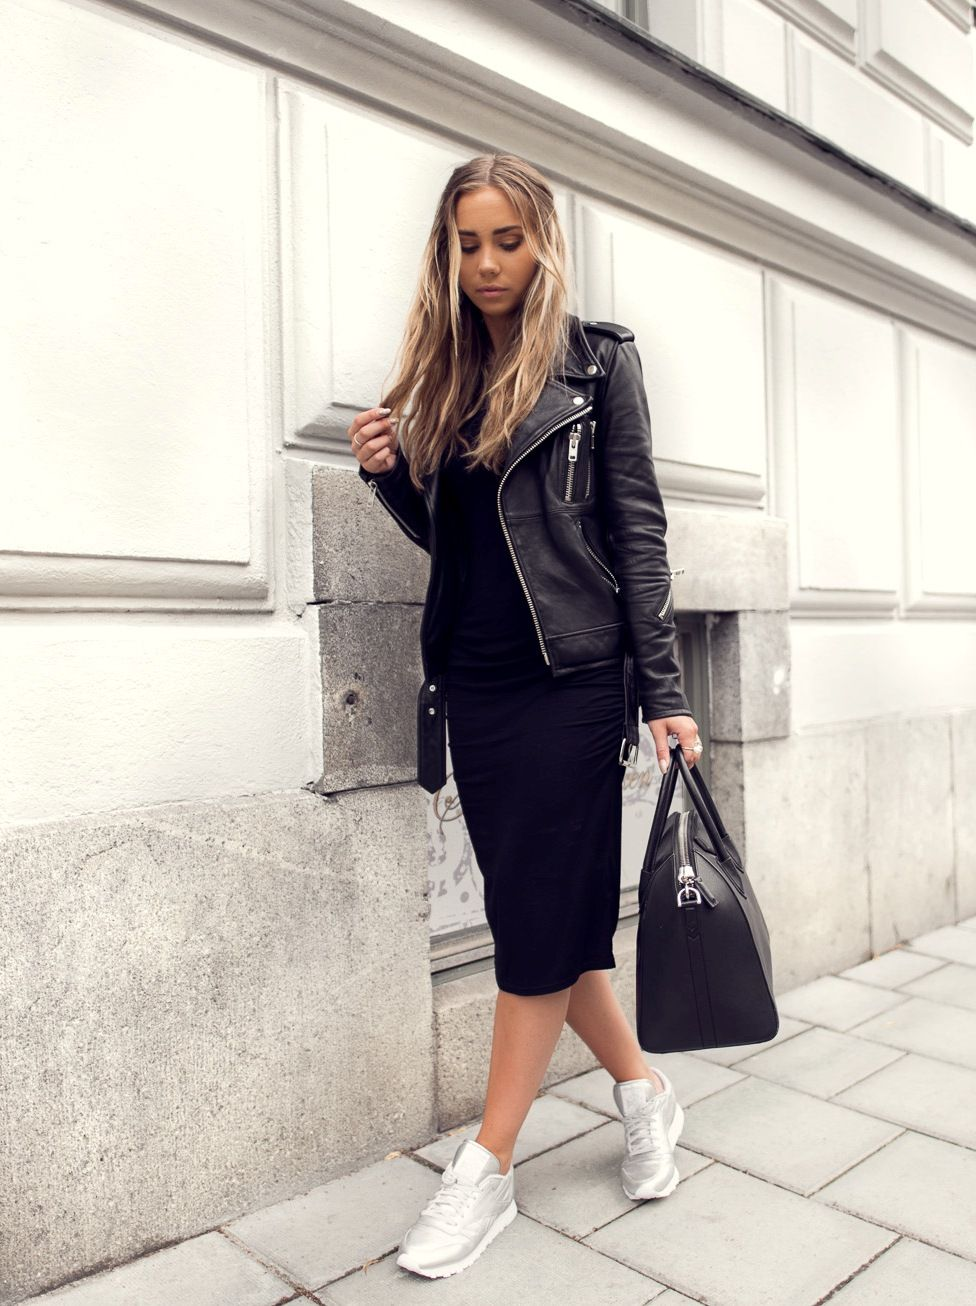 How To Look Chic In Sneakers With Lisa Olsson Glam Radar Fashion Fashion Outfits Dress With Sneakers [ 1306 x 976 Pixel ]